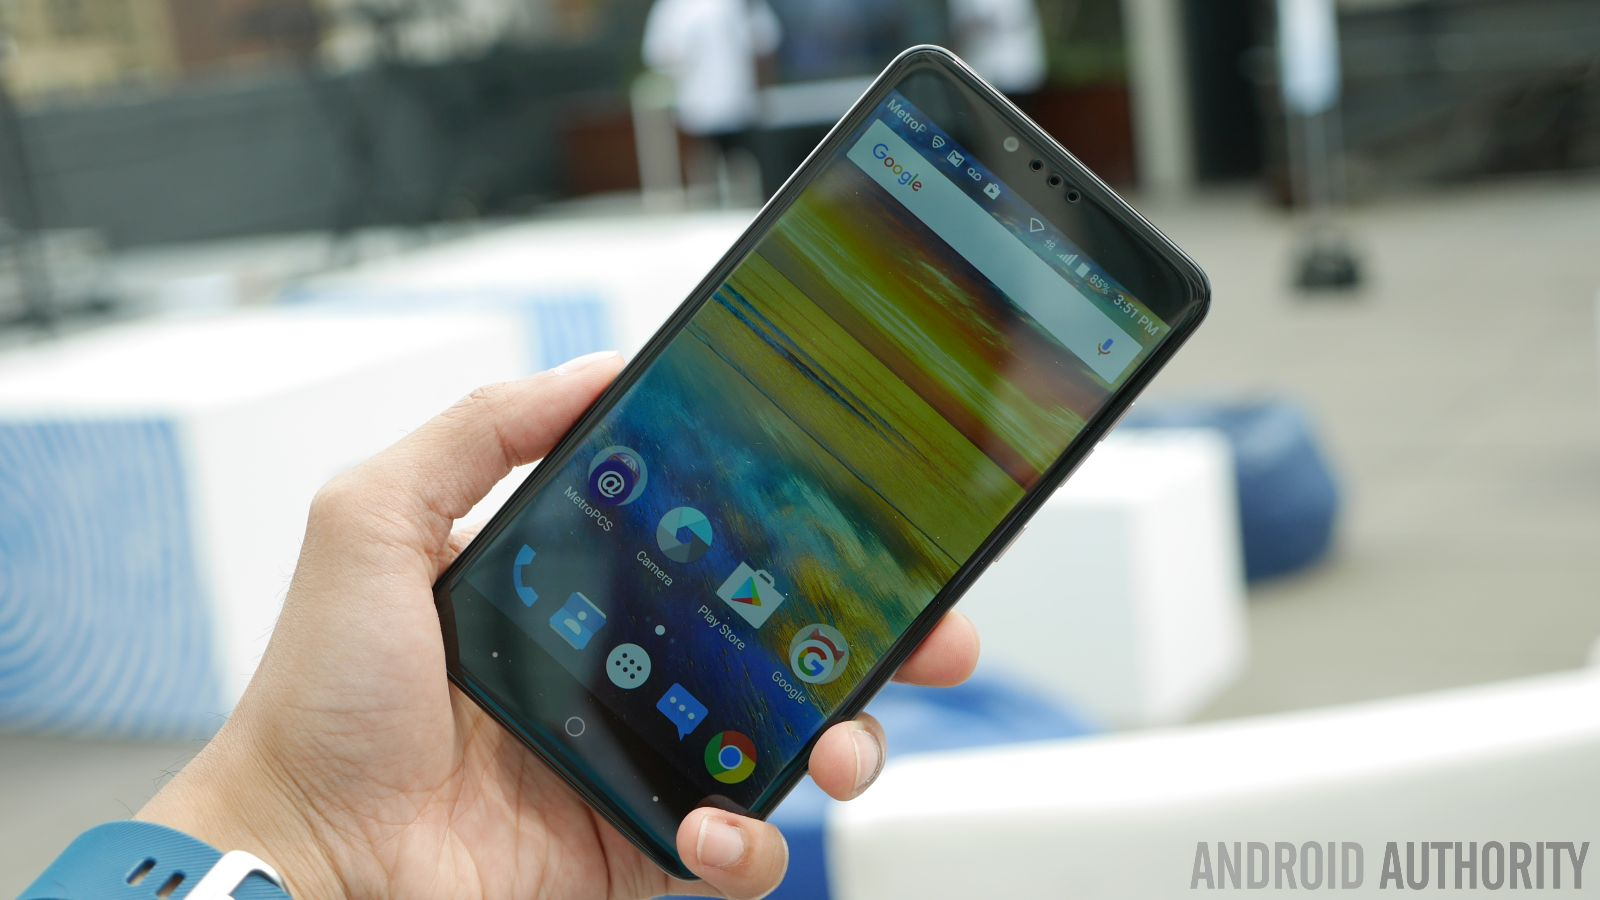 ZTE ZMAX Pro hands on | What is a $100 smartphone like? - Android